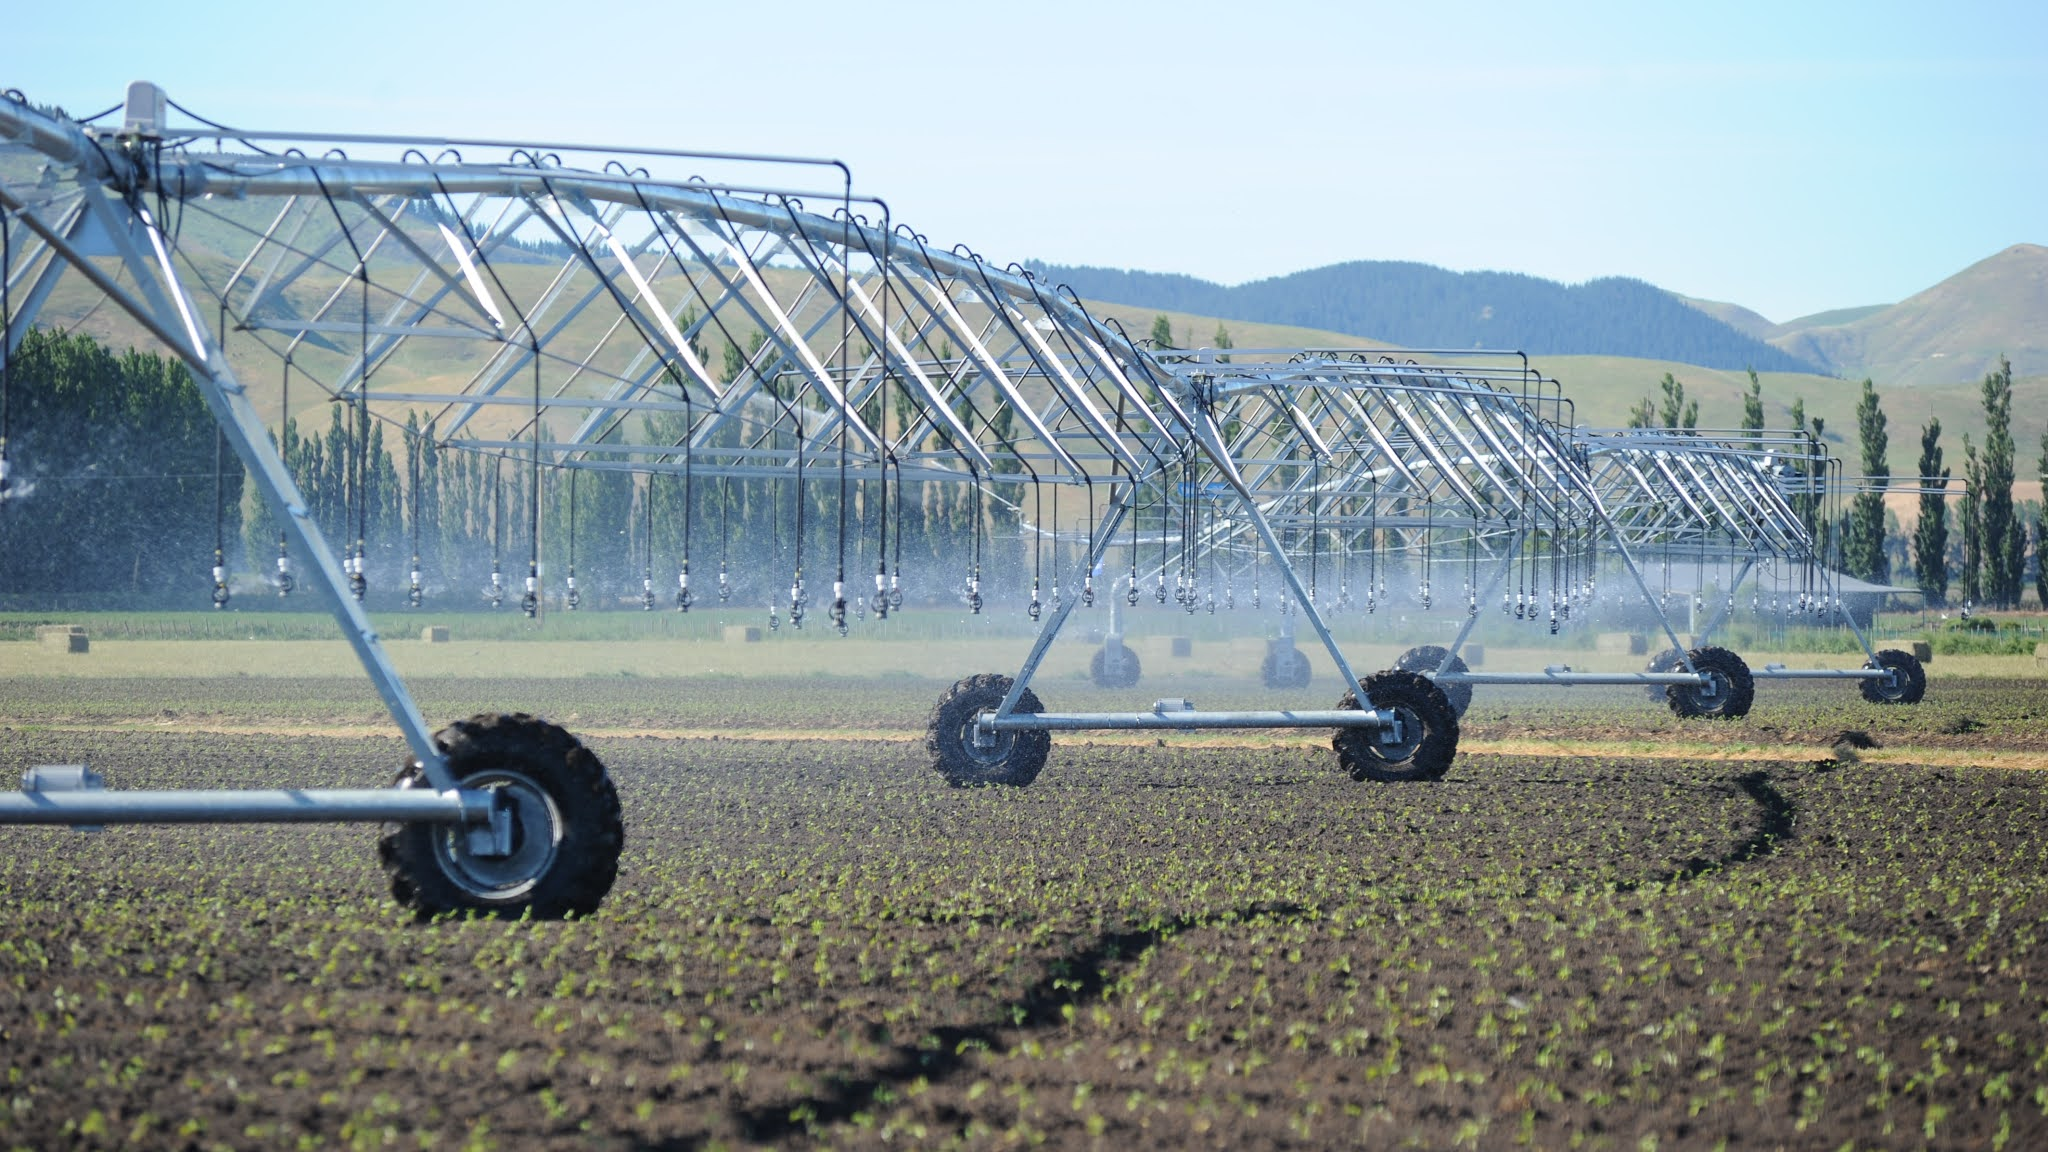 Kenyan government launched the ambitious Galana Kulalu irrigation project in 2014. But what exactly went wrong with the project?